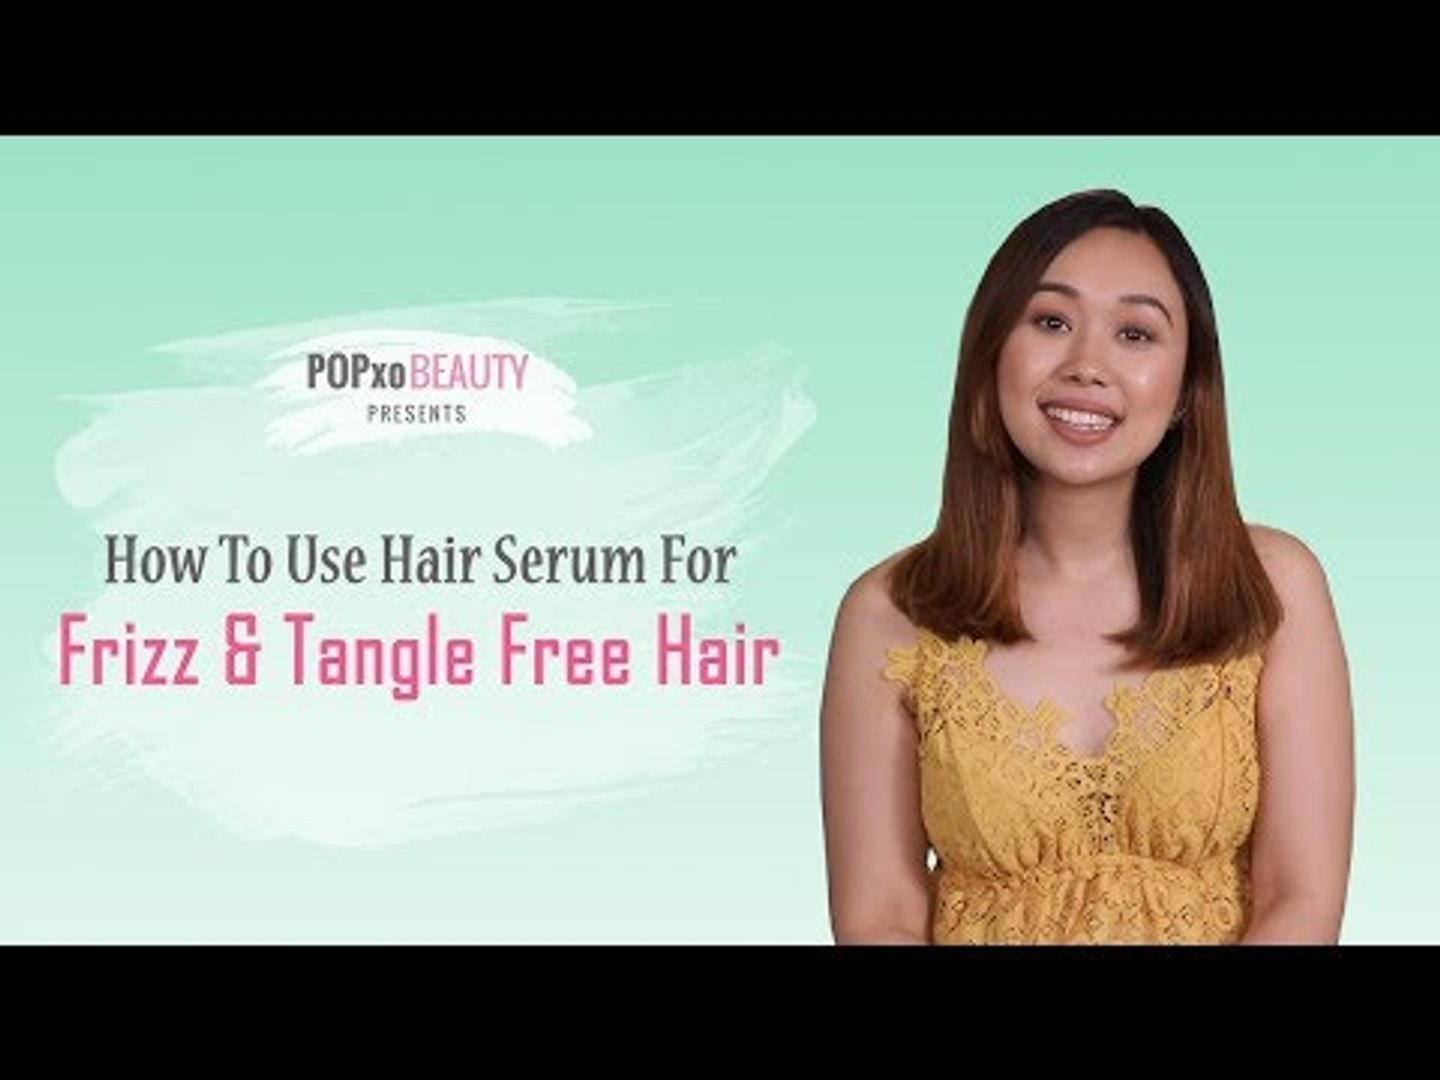 More About Hair Serum Benefits